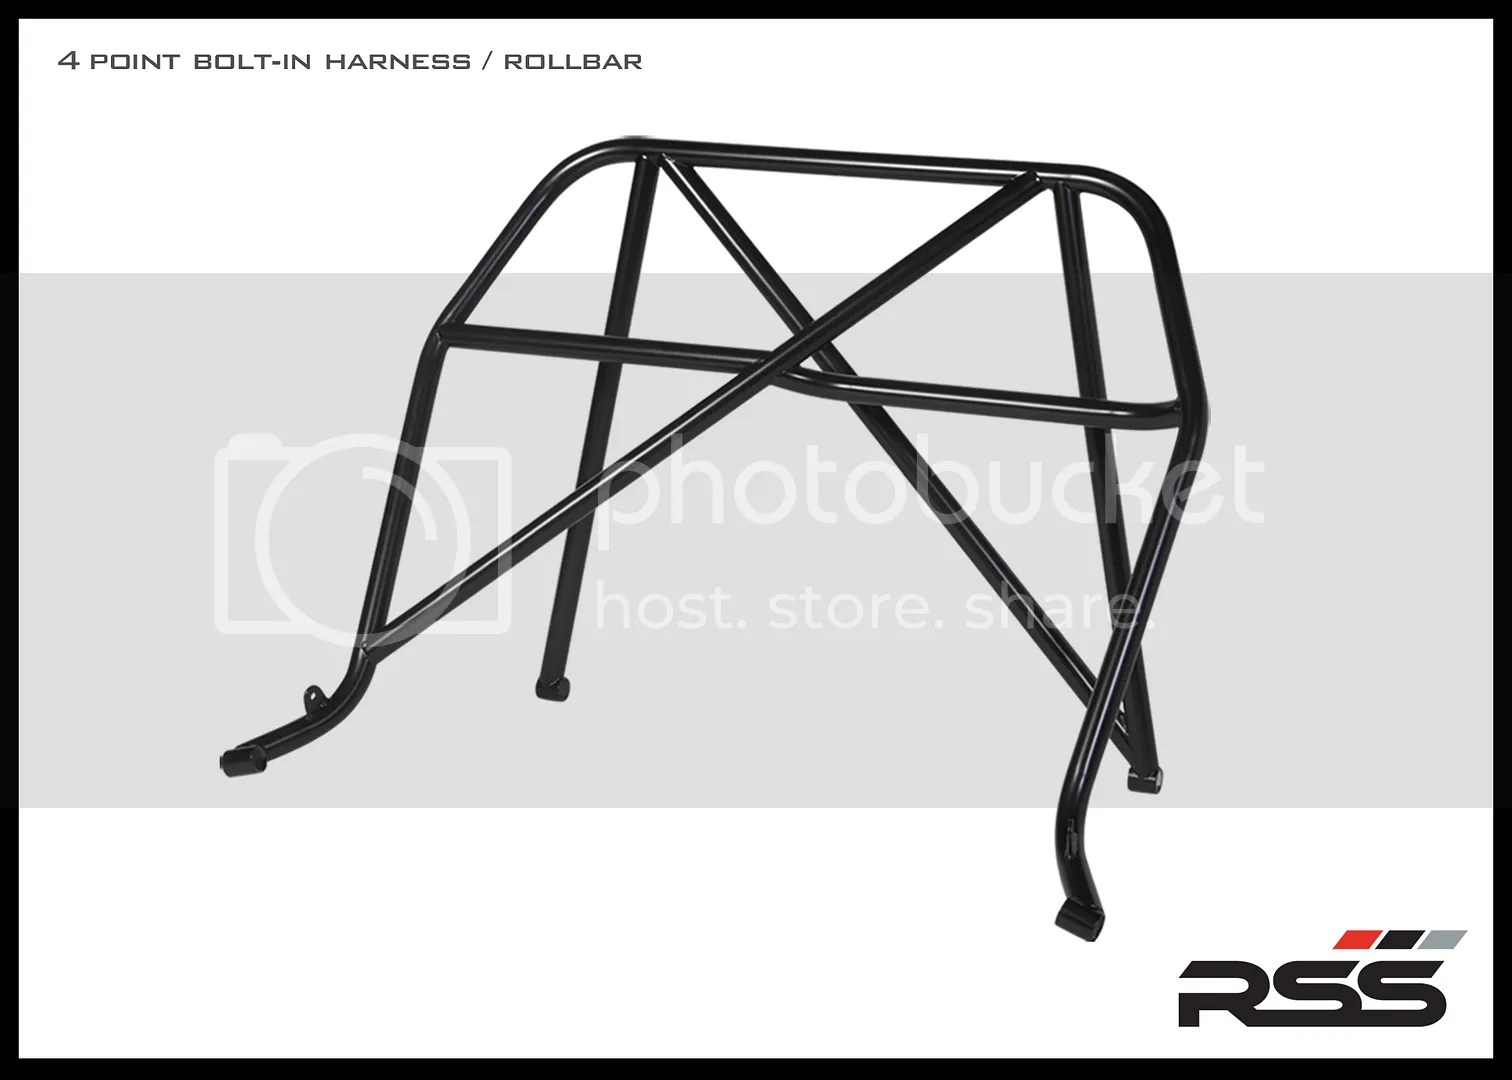 RSS: To trim or not trim? 930 vs. 901 Harness/Roll Bar